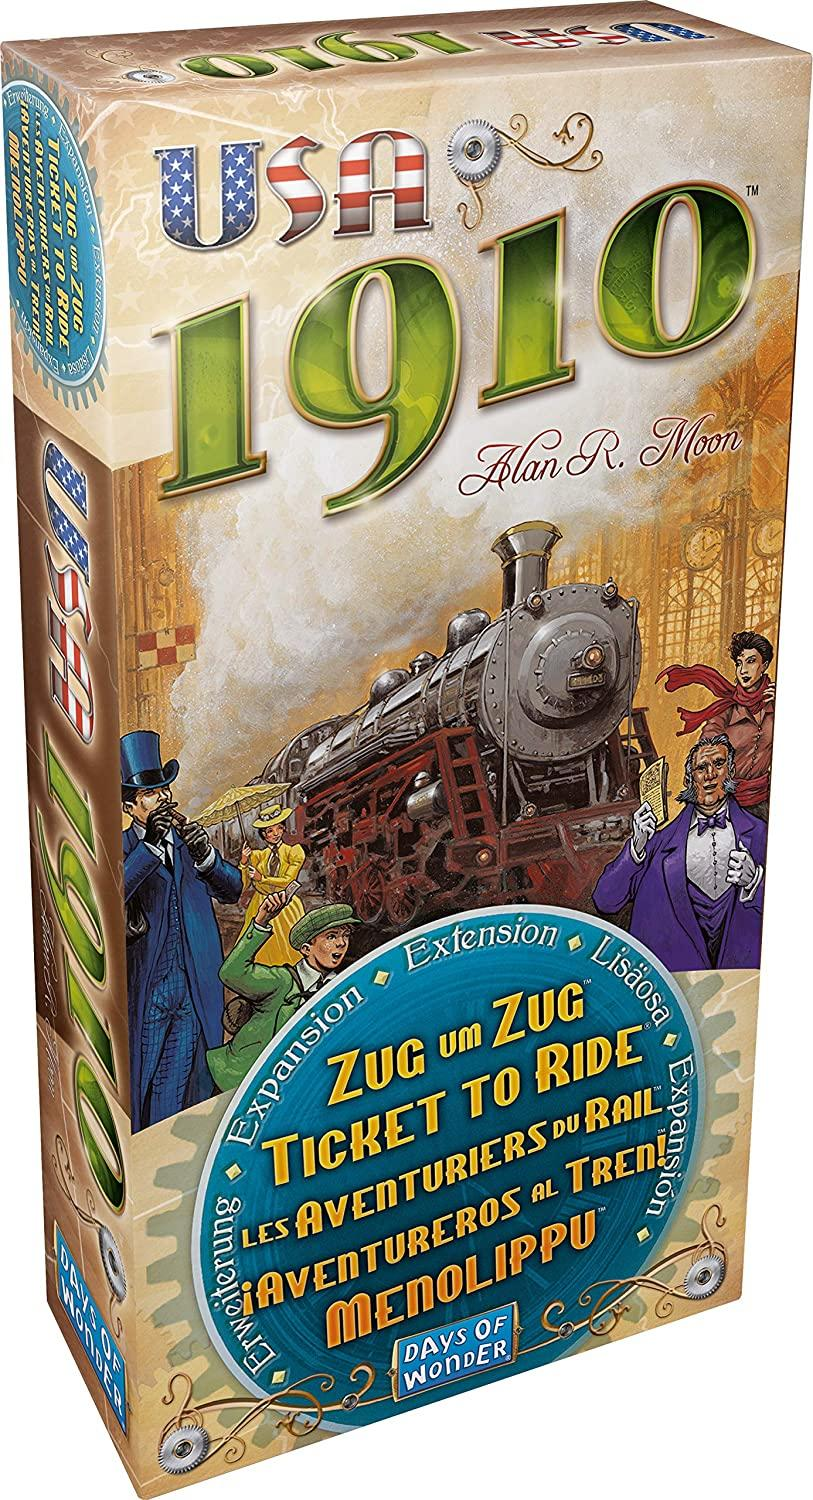 Ticket to Ride - USA 1910 Expansion - Roll2Learn